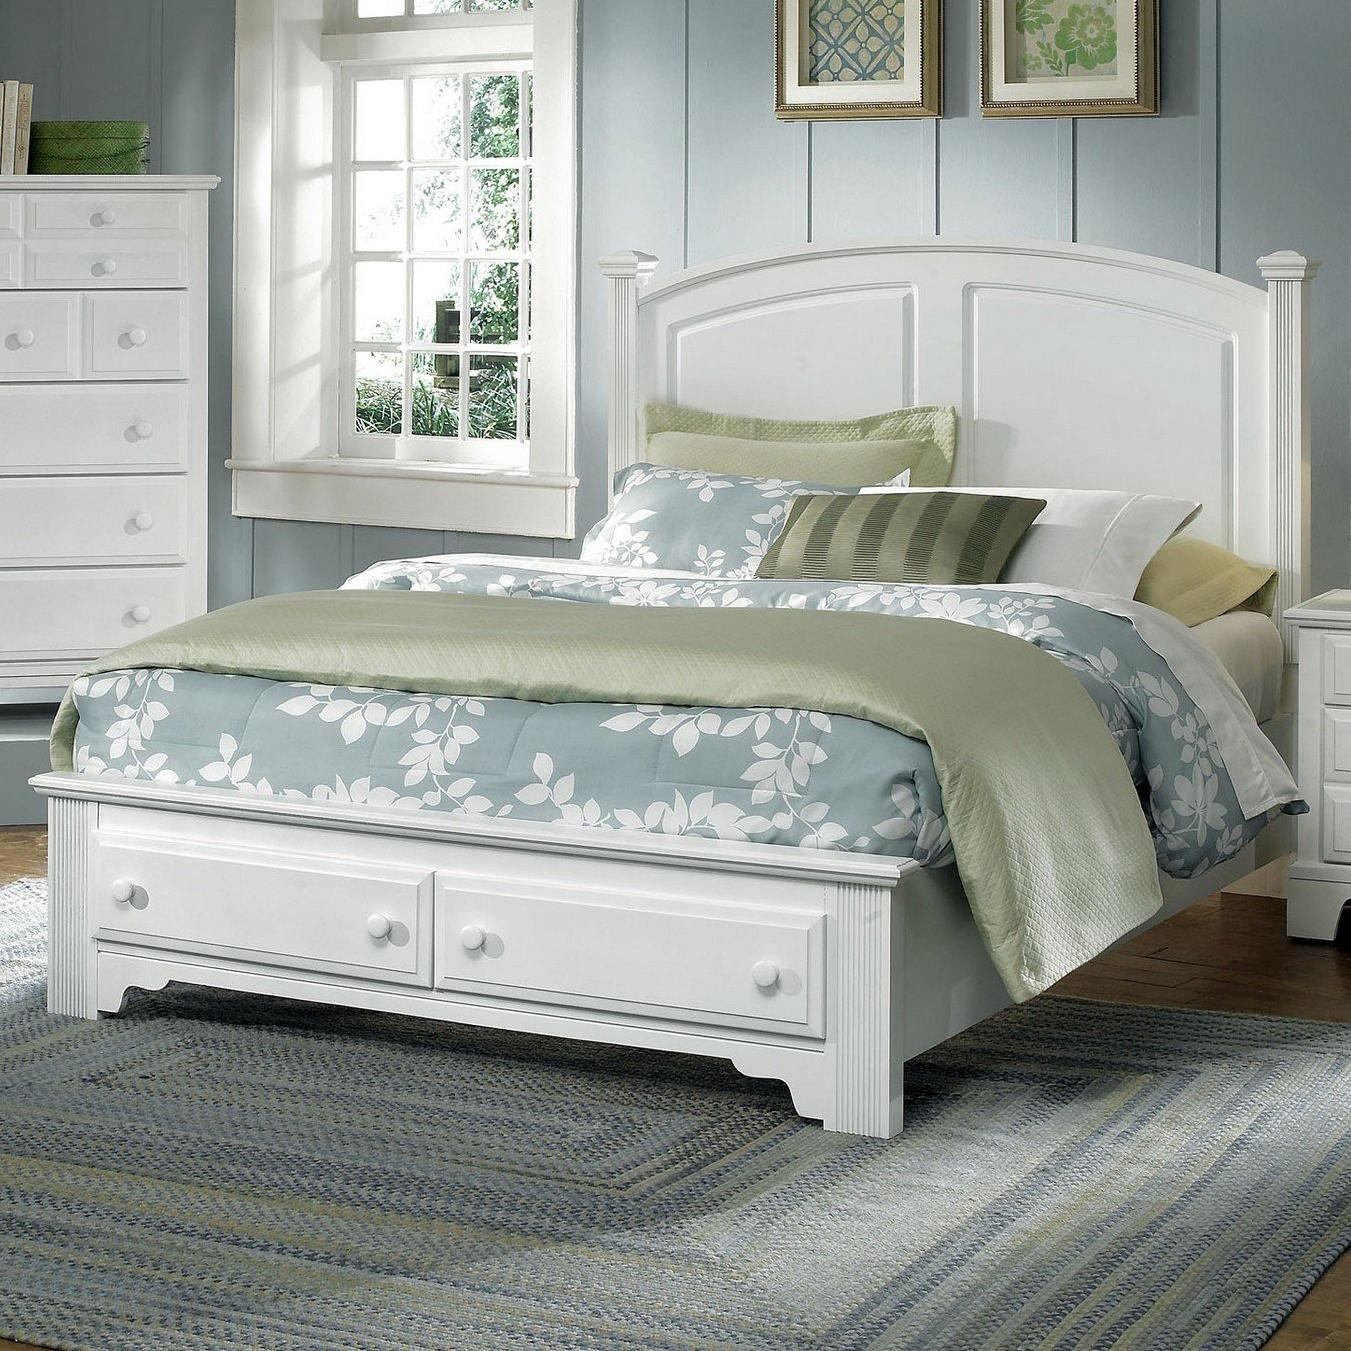 Hamilton/Franklin Queen Panel Storage Bed by Vaughan Bassett at Northeast Factory Direct